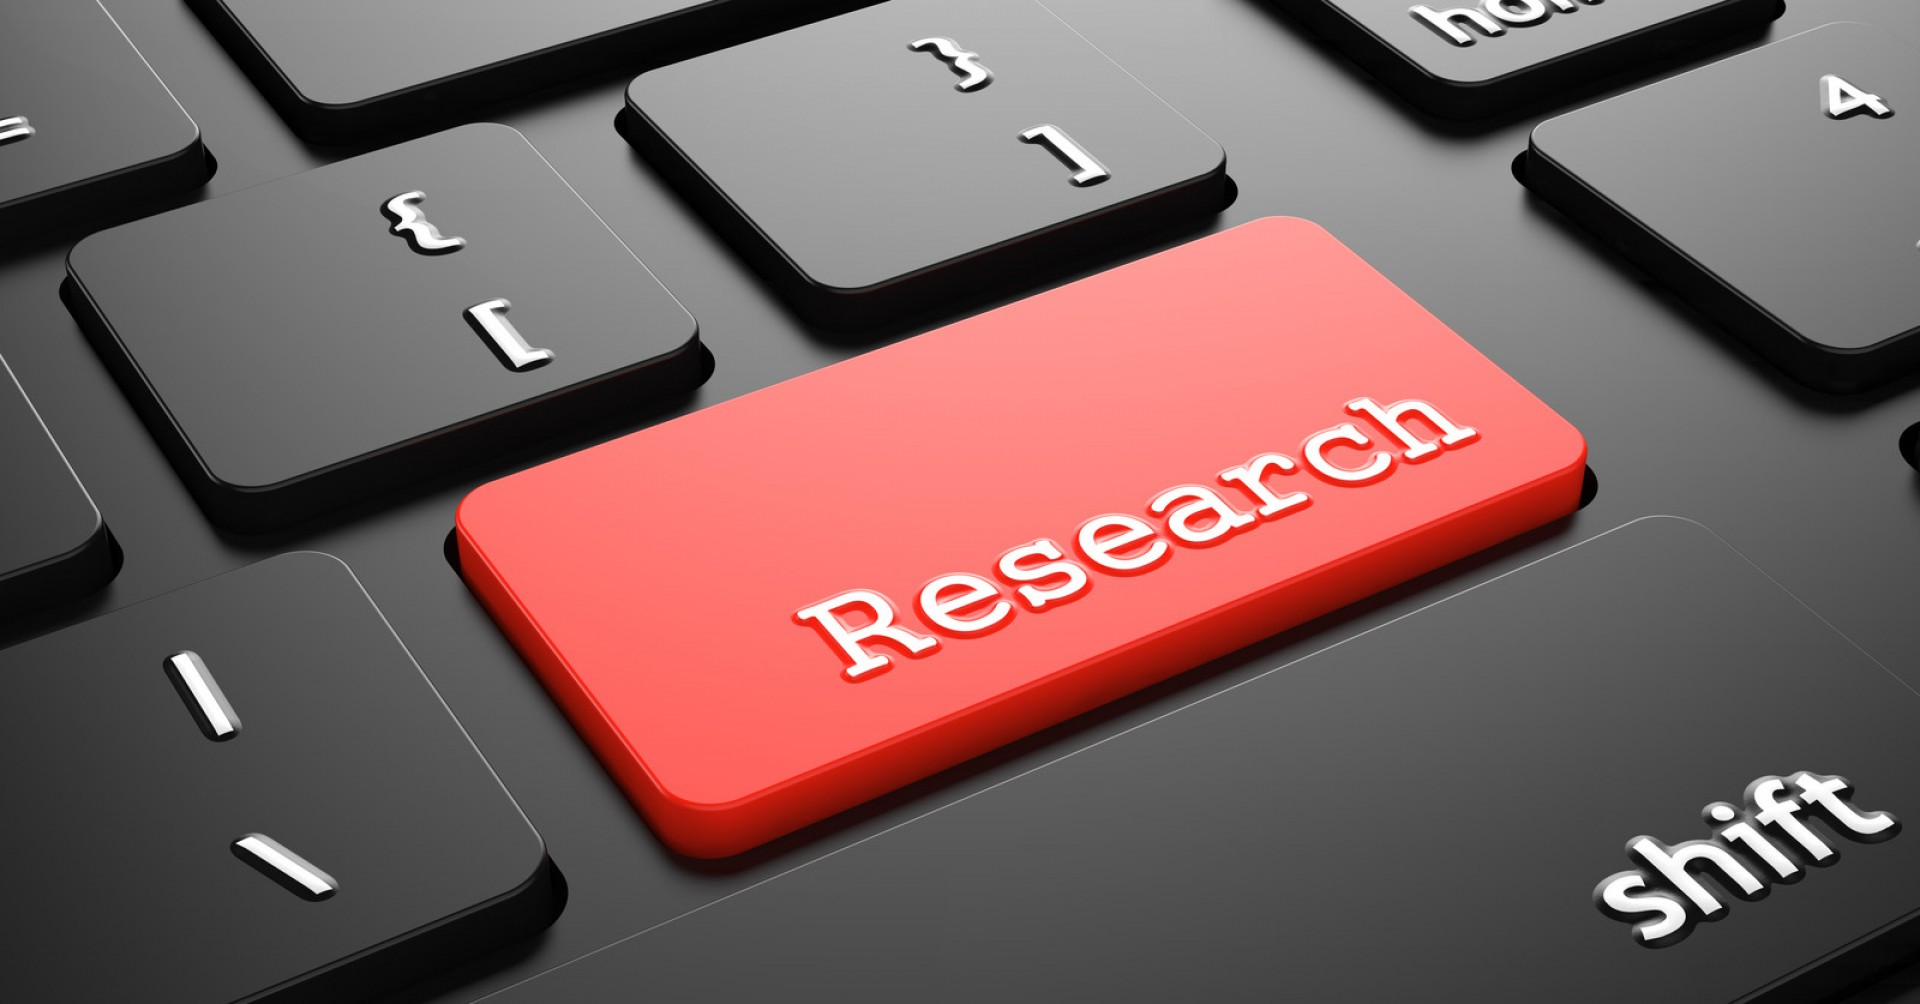 007 Researchkey Research Paper Best Site To Download Papers Unbelievable Free How From Researchgate Springer Sciencedirect 1920